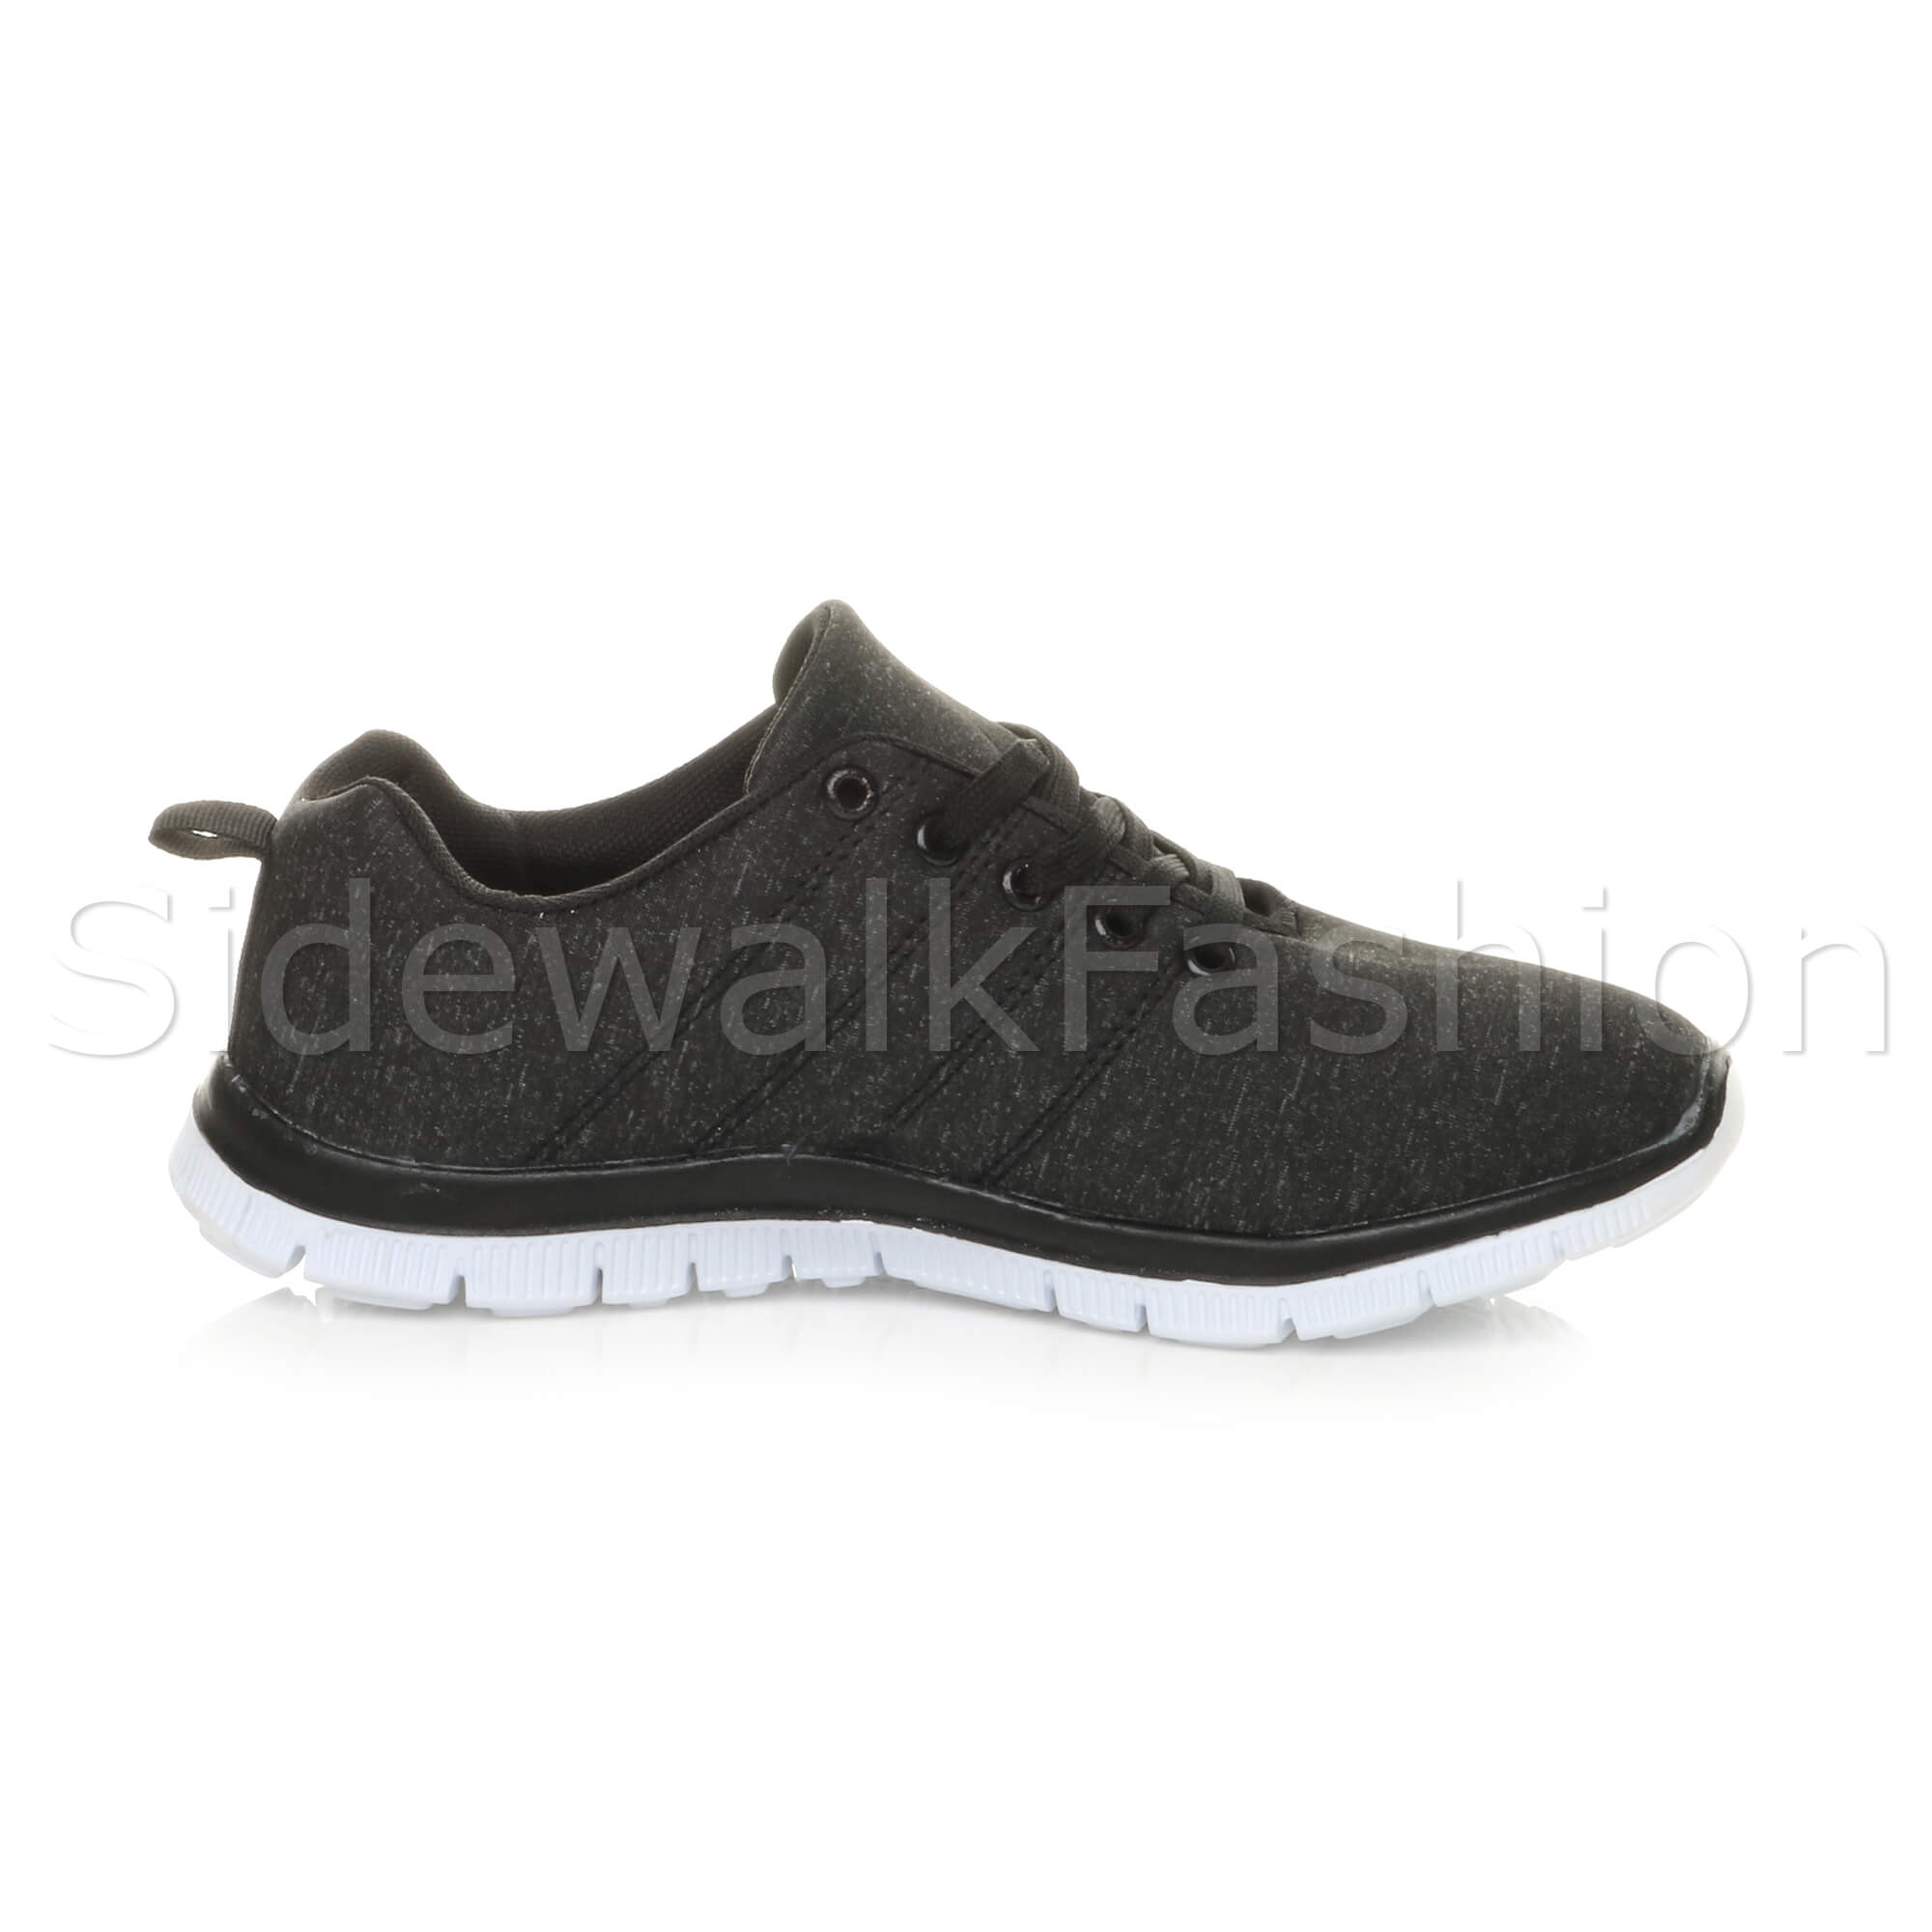 Womens-ladies-comfort-memory-foam-lace-up-trainers-activewear-sneakers-gym-shoes thumbnail 22